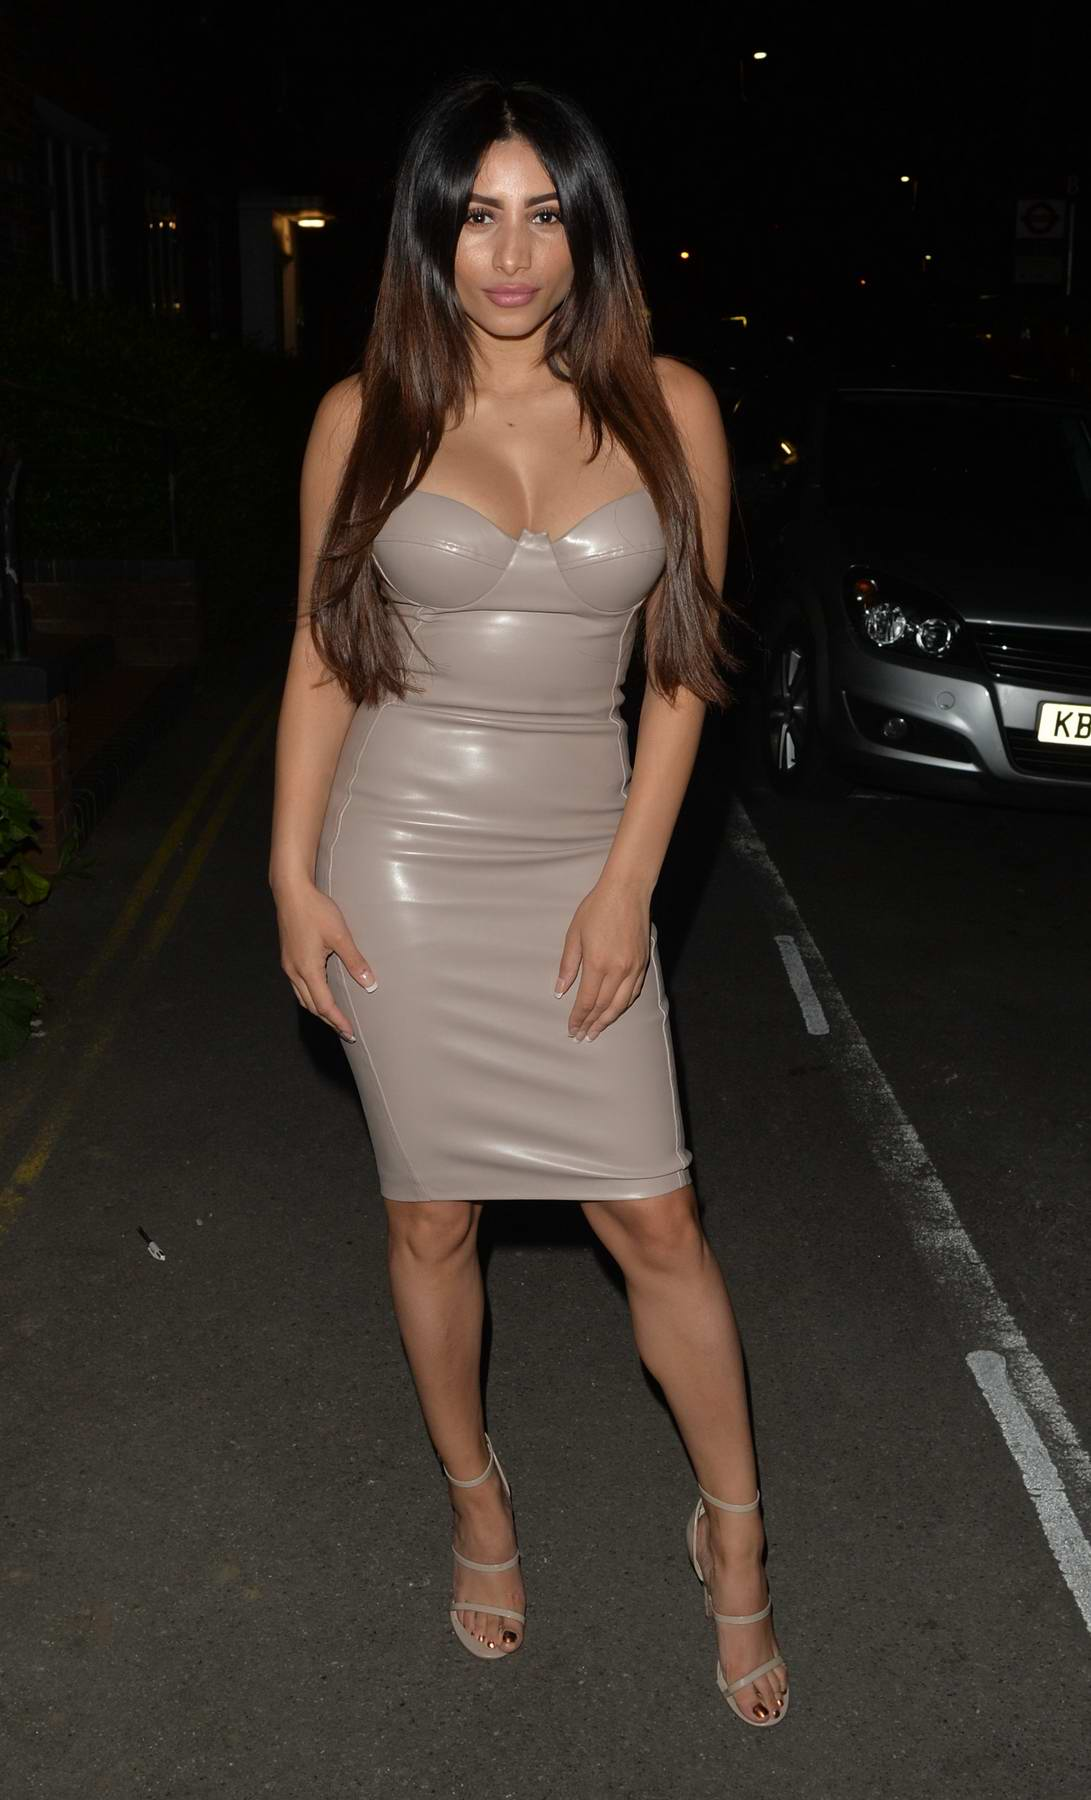 Kayleigh Morris arriving at the Mayfair Hotel in London